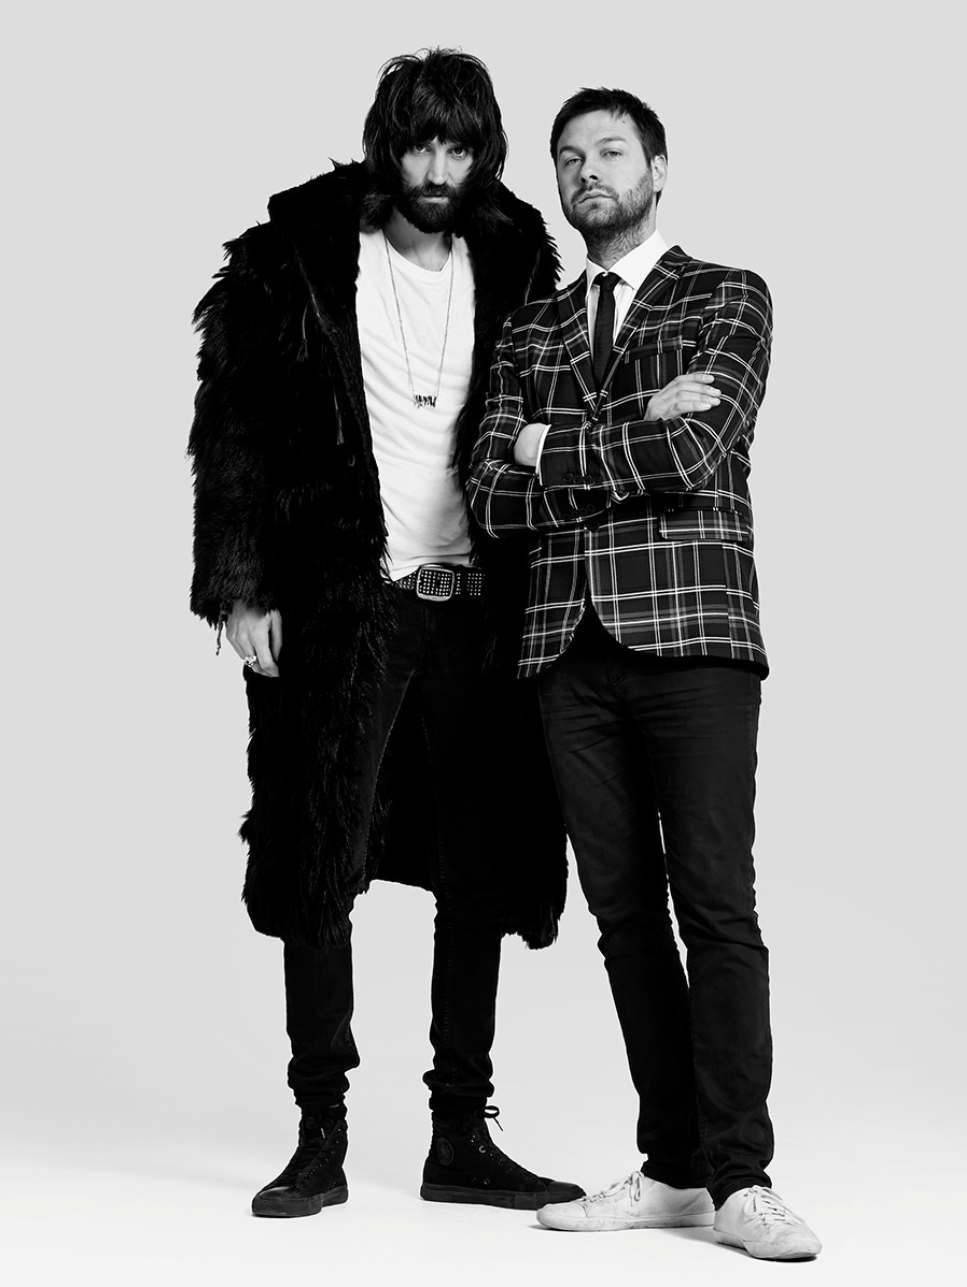 Image by Neil Bedford, all rights reserved.Tom & Sergio, Kasabian, 2014.